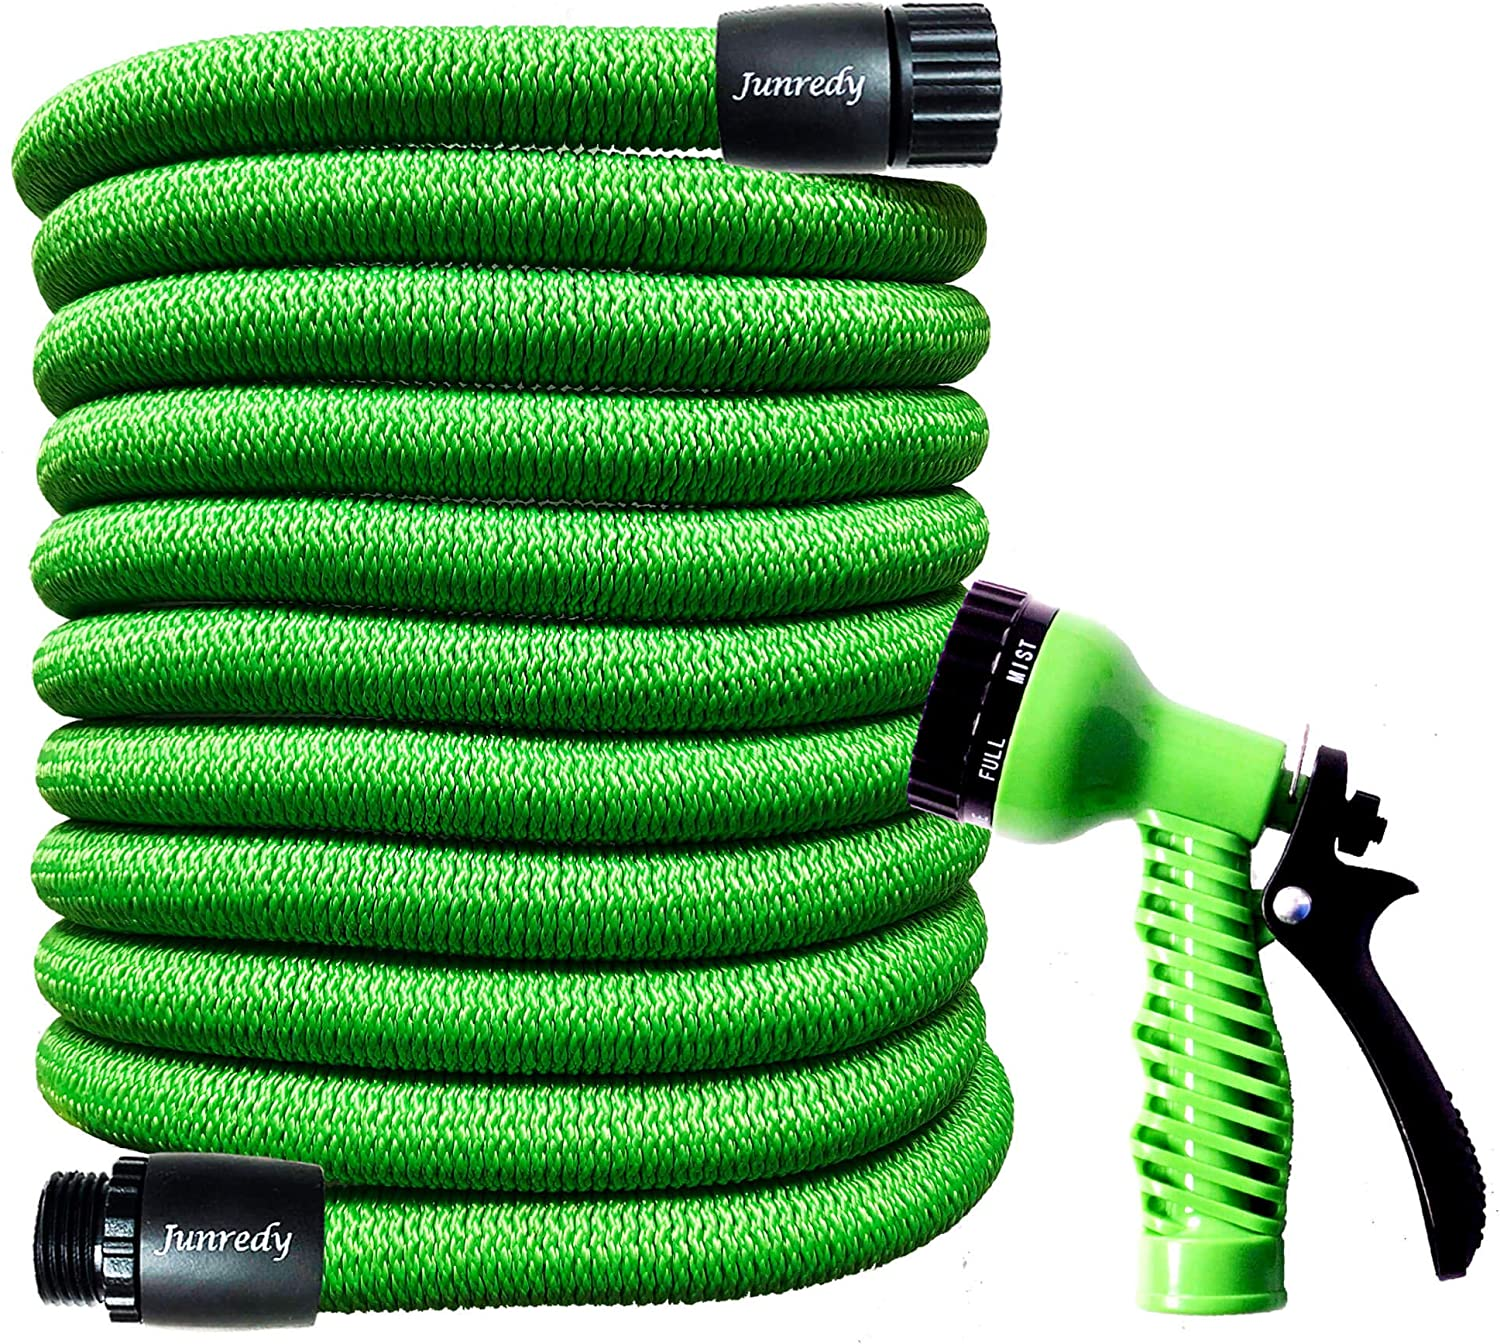 "Junredy 25ft Garden Hose Expandable Water Hose - Durable 3750D Fabric | 3/4"" Connectors with Protectors 